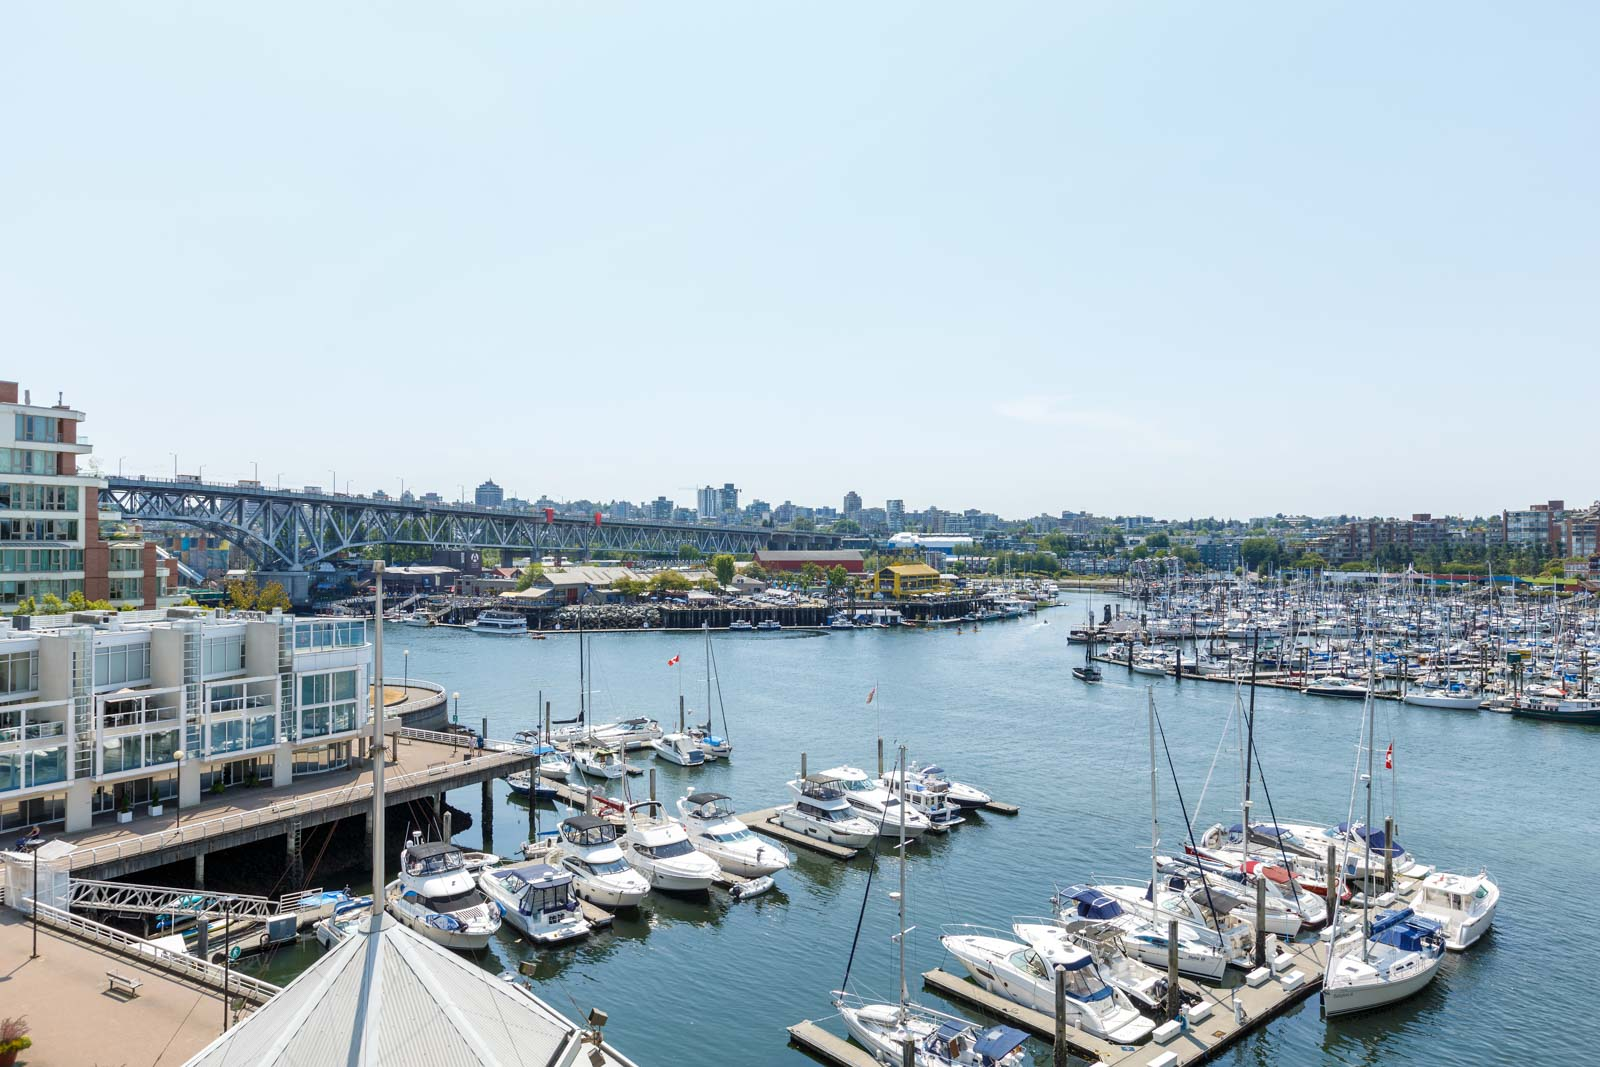 panoramic view of the granville island marina